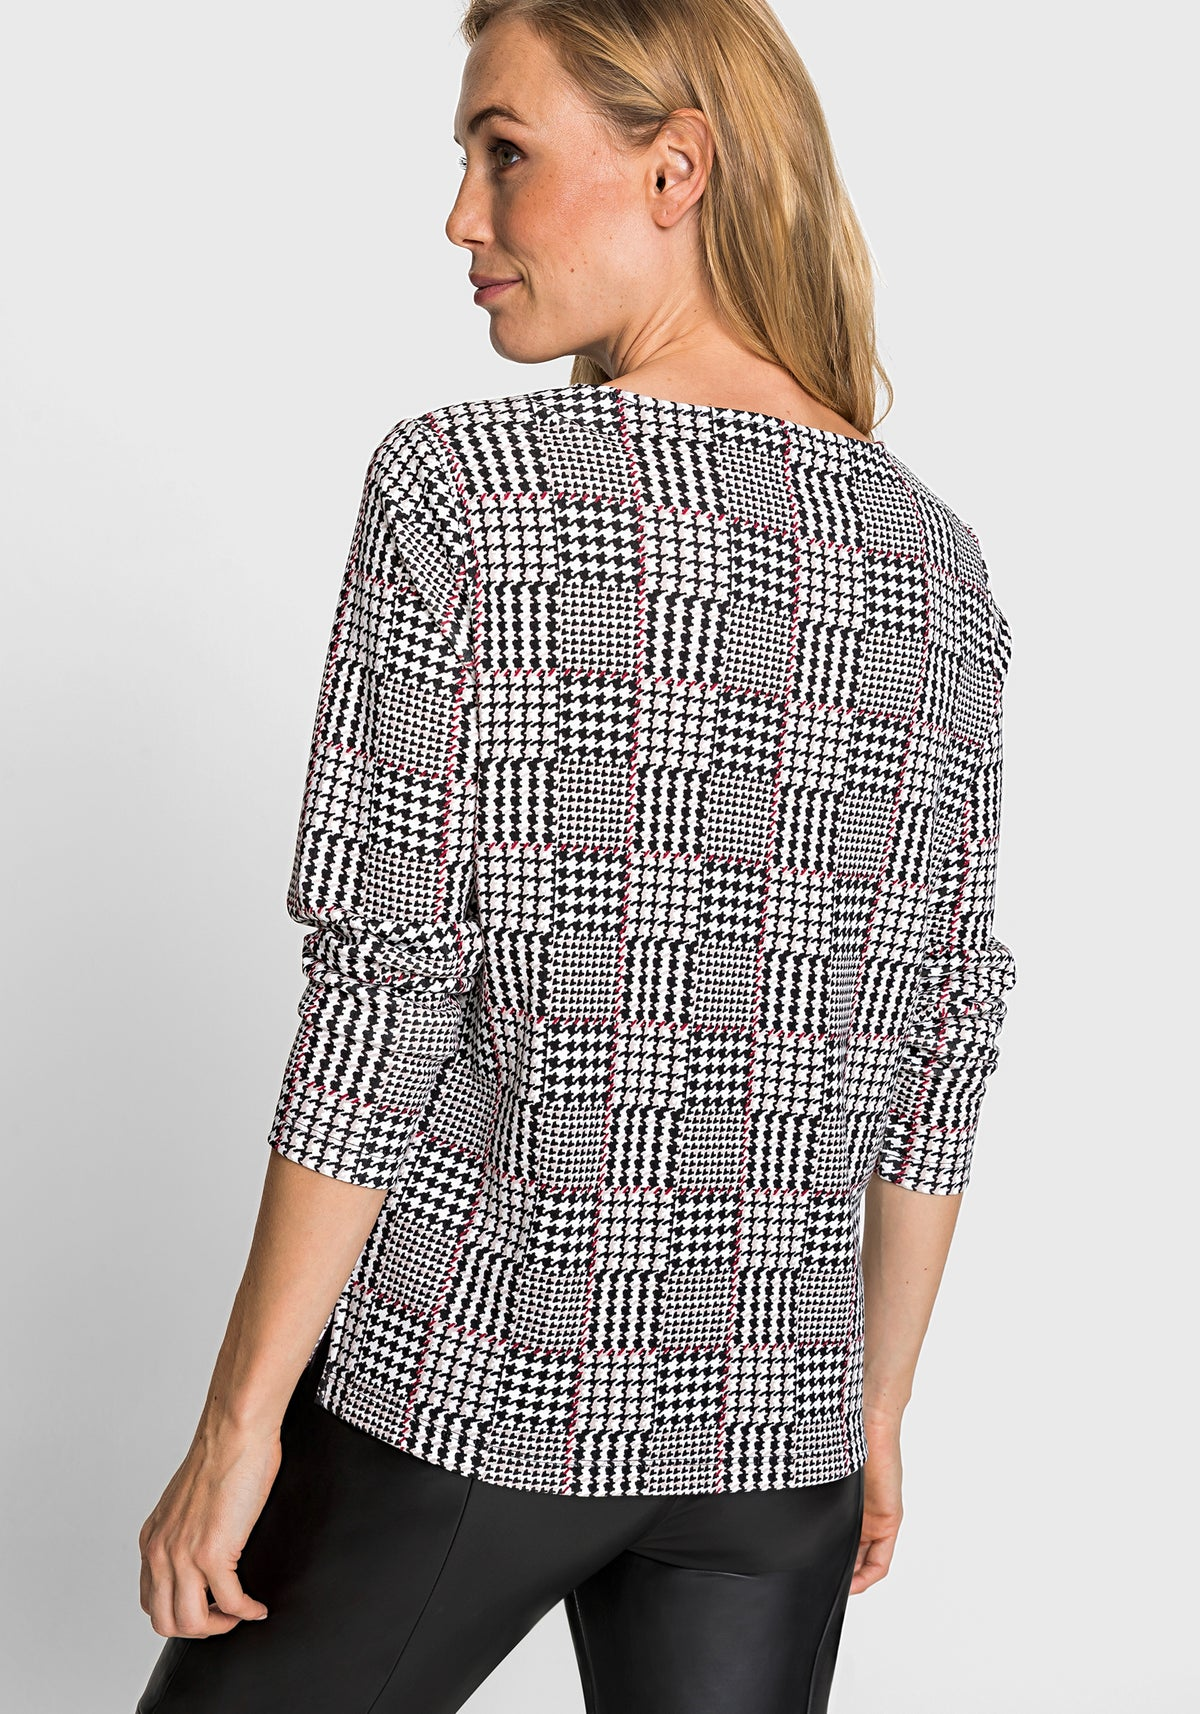 Long Sleeve Houndstooth Checker Print Jersey Knit Top